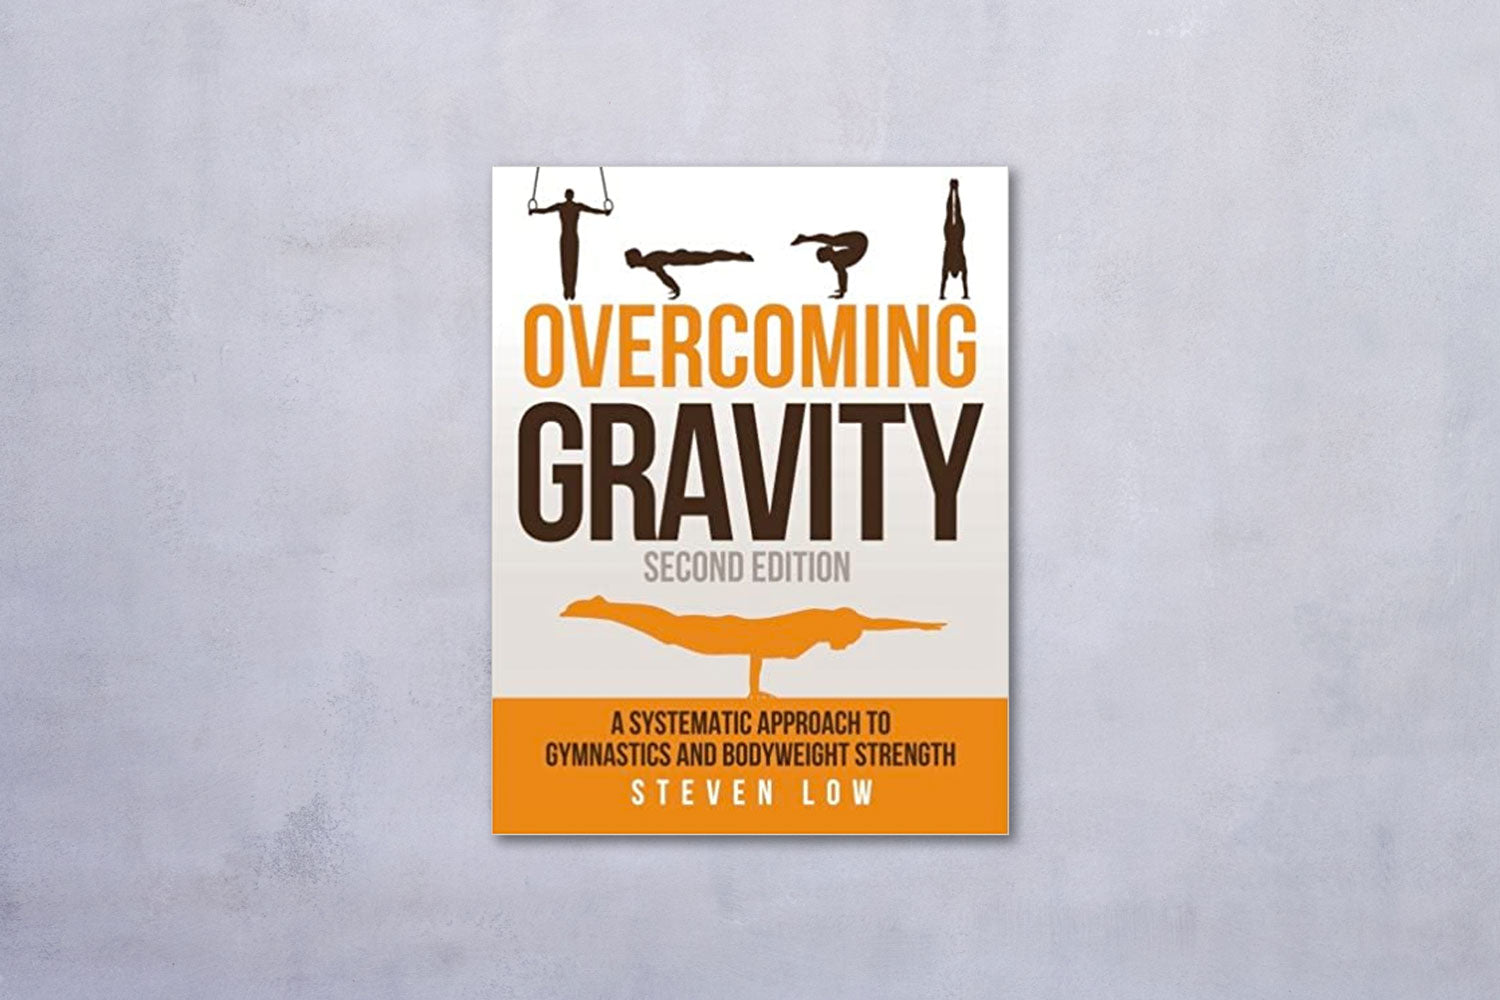 Overcoming Gravity by Steven Low book cover